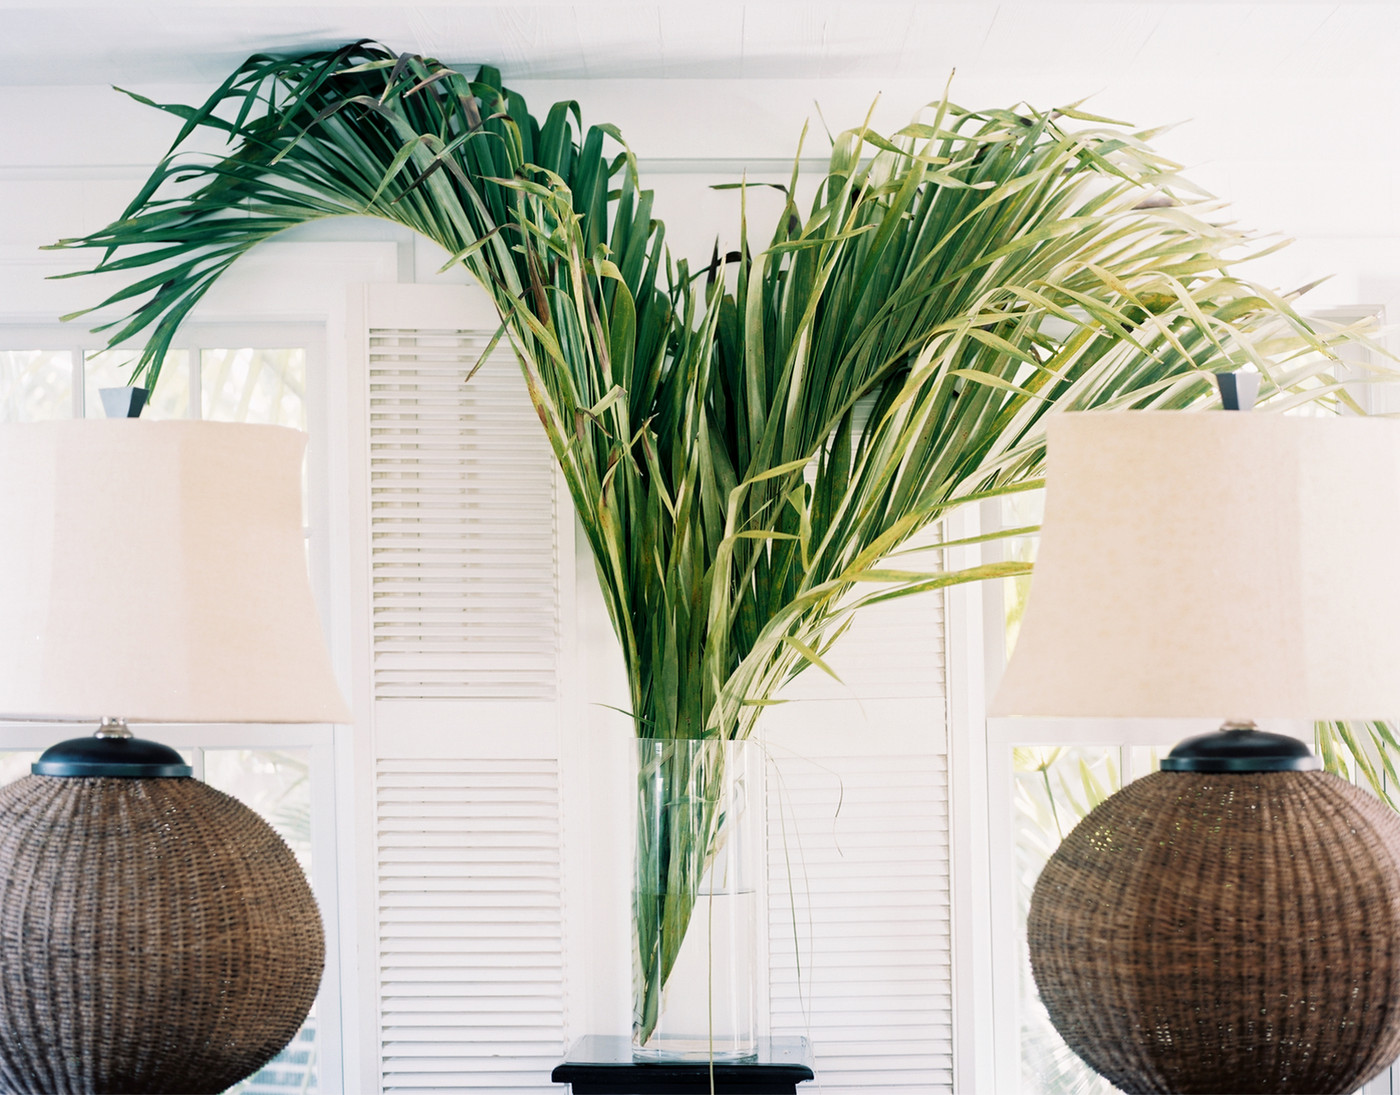 dEcOrAtInG iDeAs: PALM FRONDZ in vases